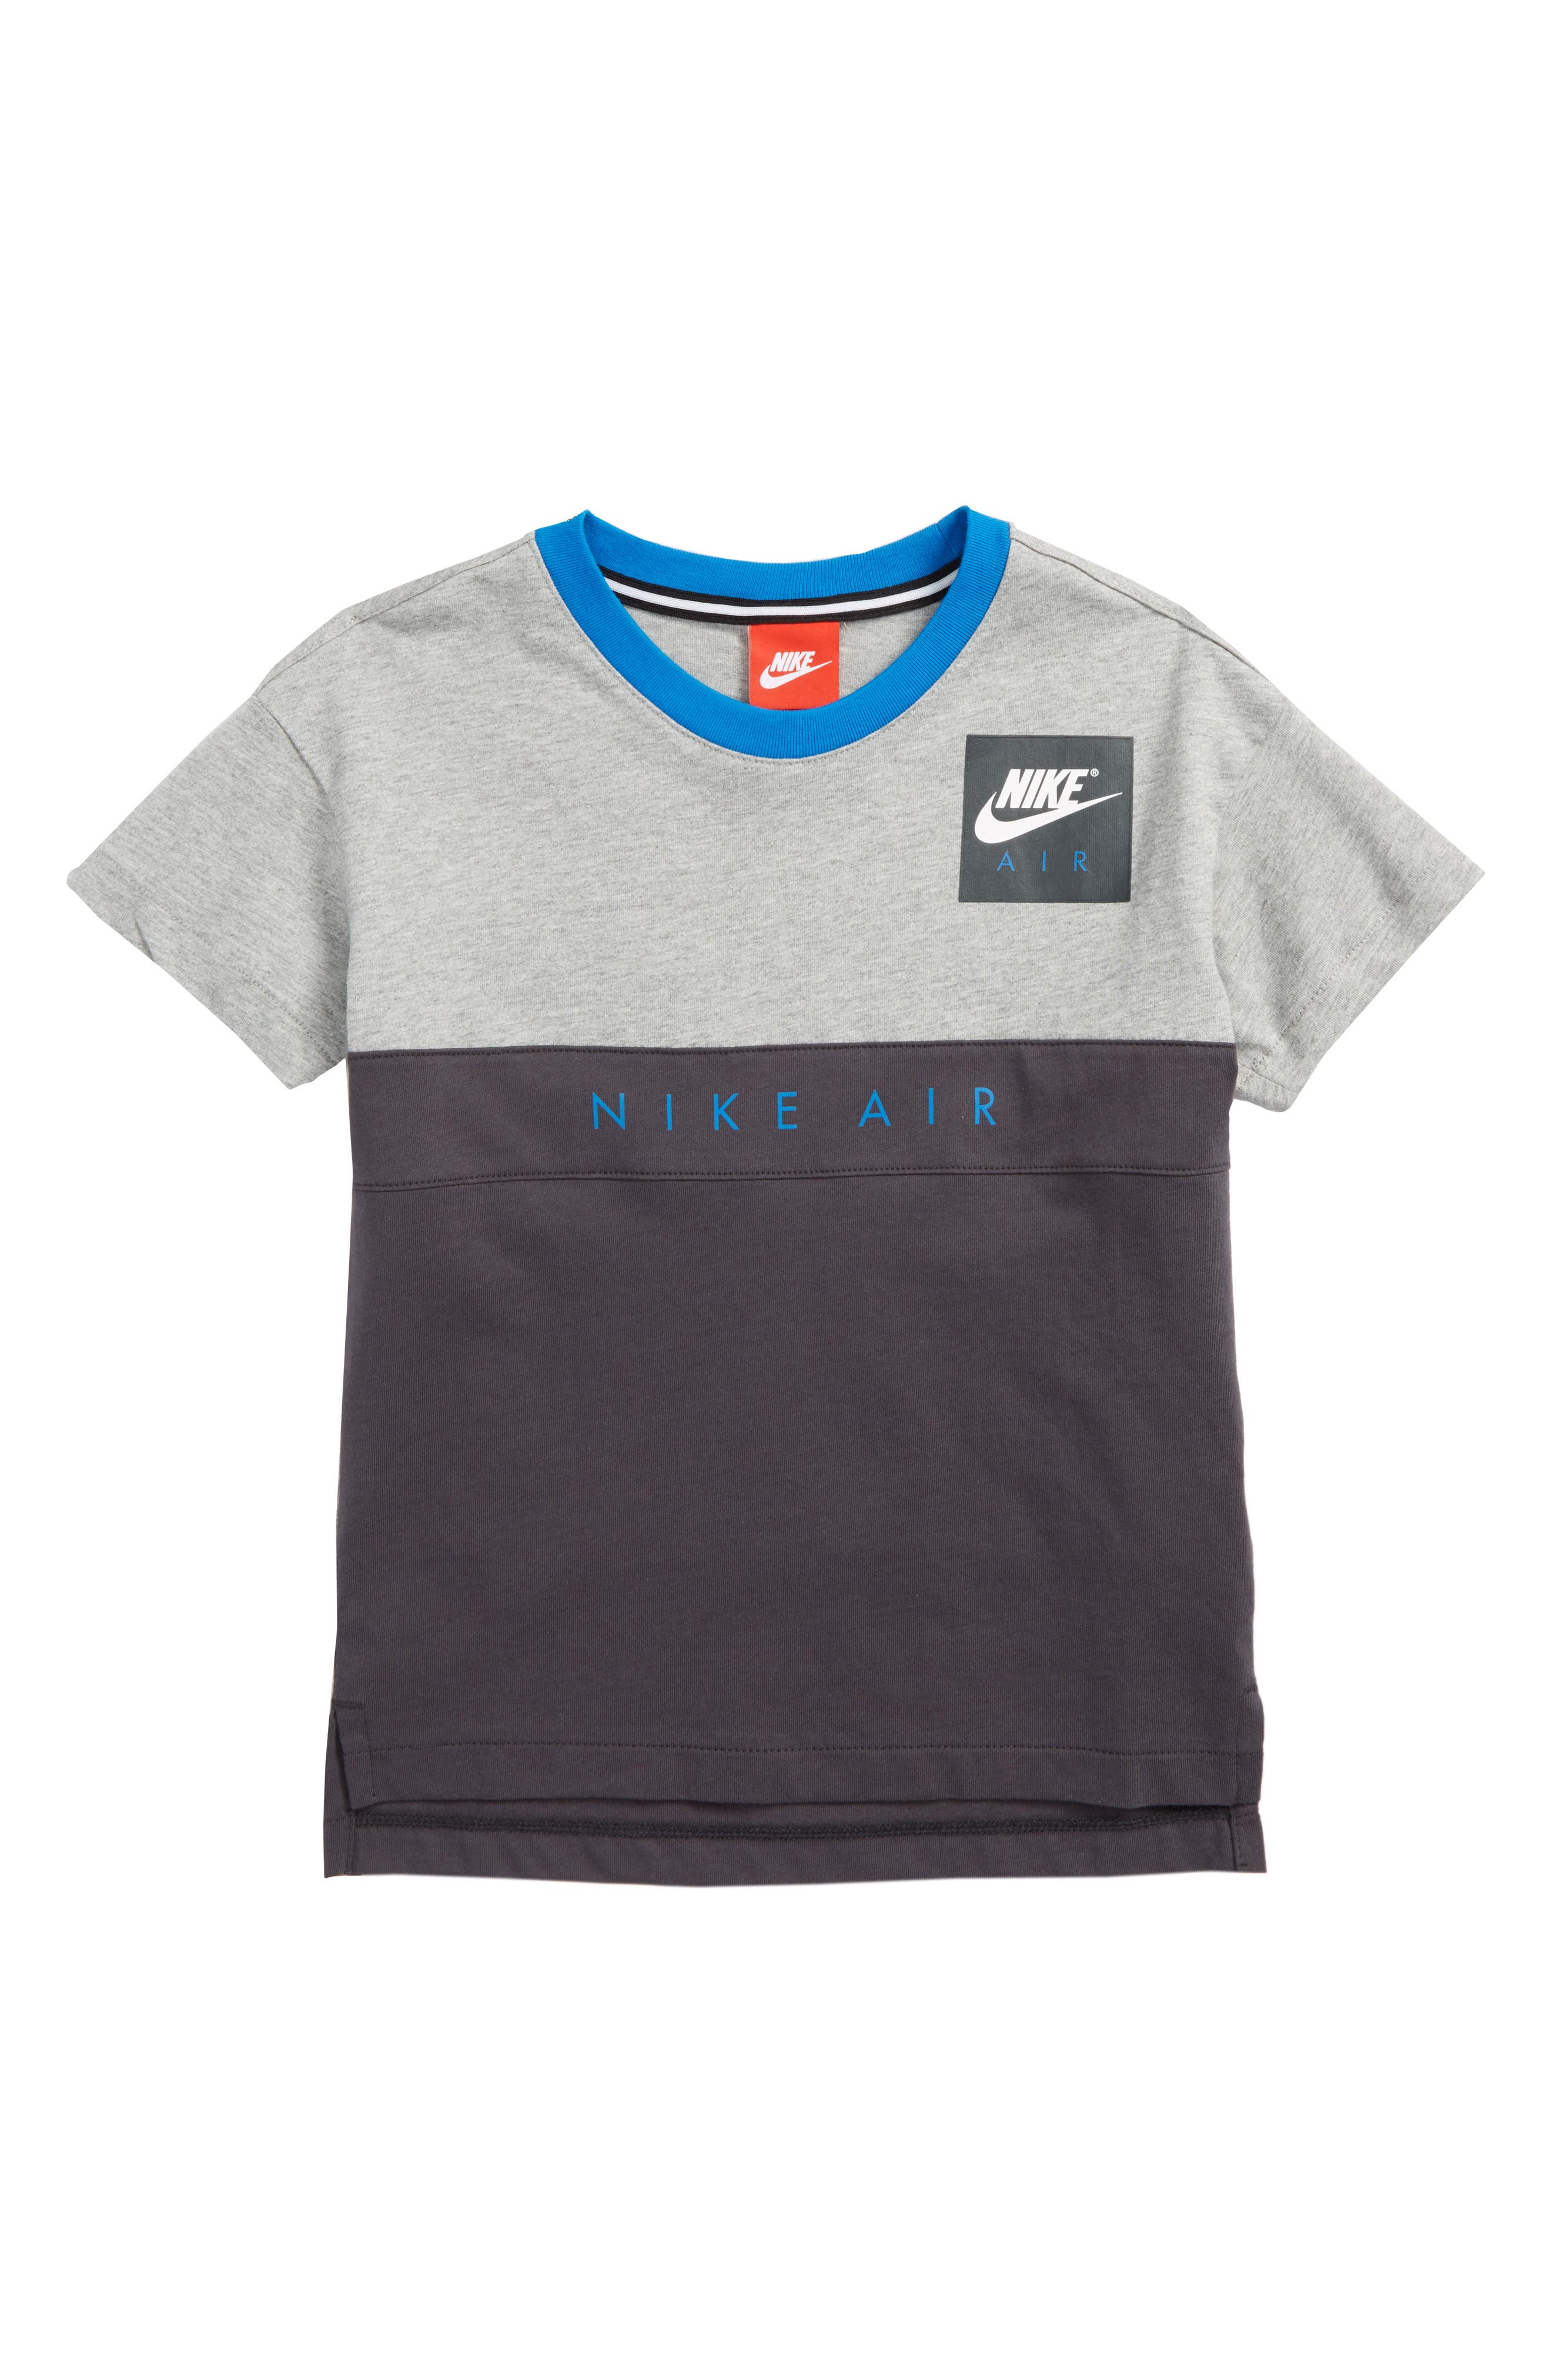 Air Shirt,                         Main,                         color, Dark Grey Heather/ Anthracite